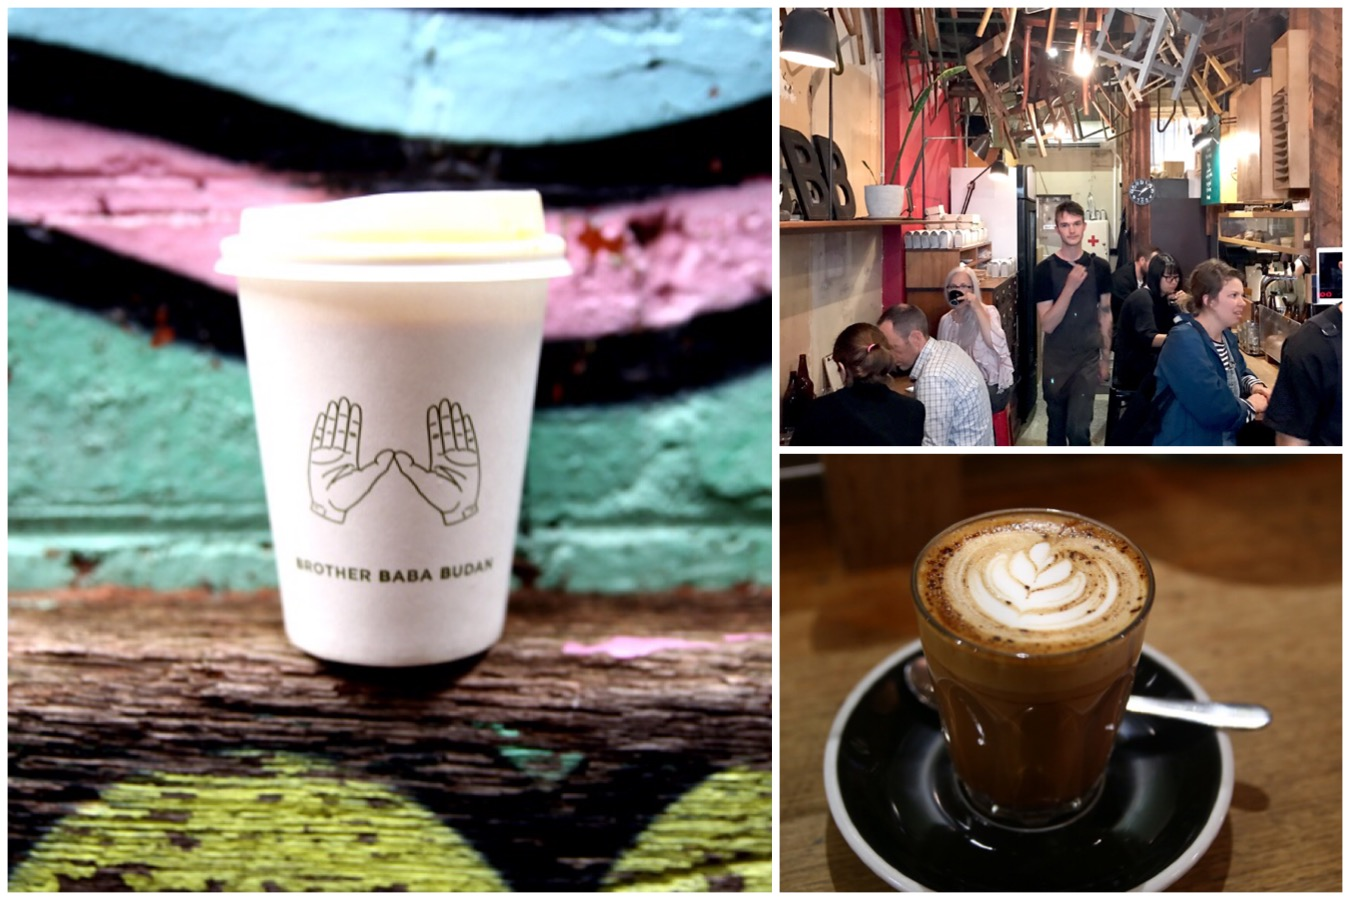 Brother Baba Budan - One Of The Best Coffee Places In Melbourne's CBD, At Little Bourke Street